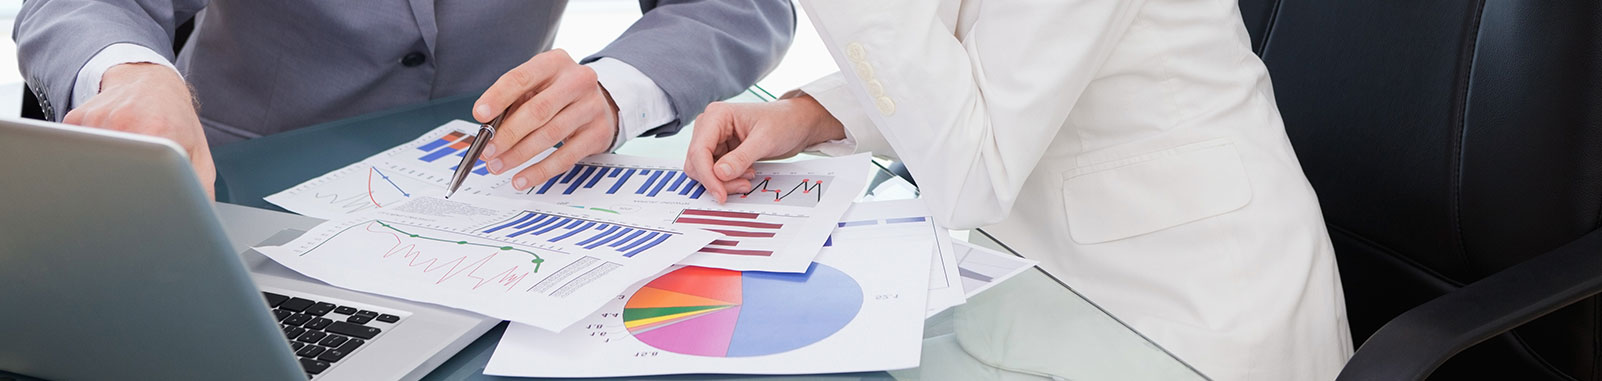 Harford County Accounting Services, Towson Financial Planning